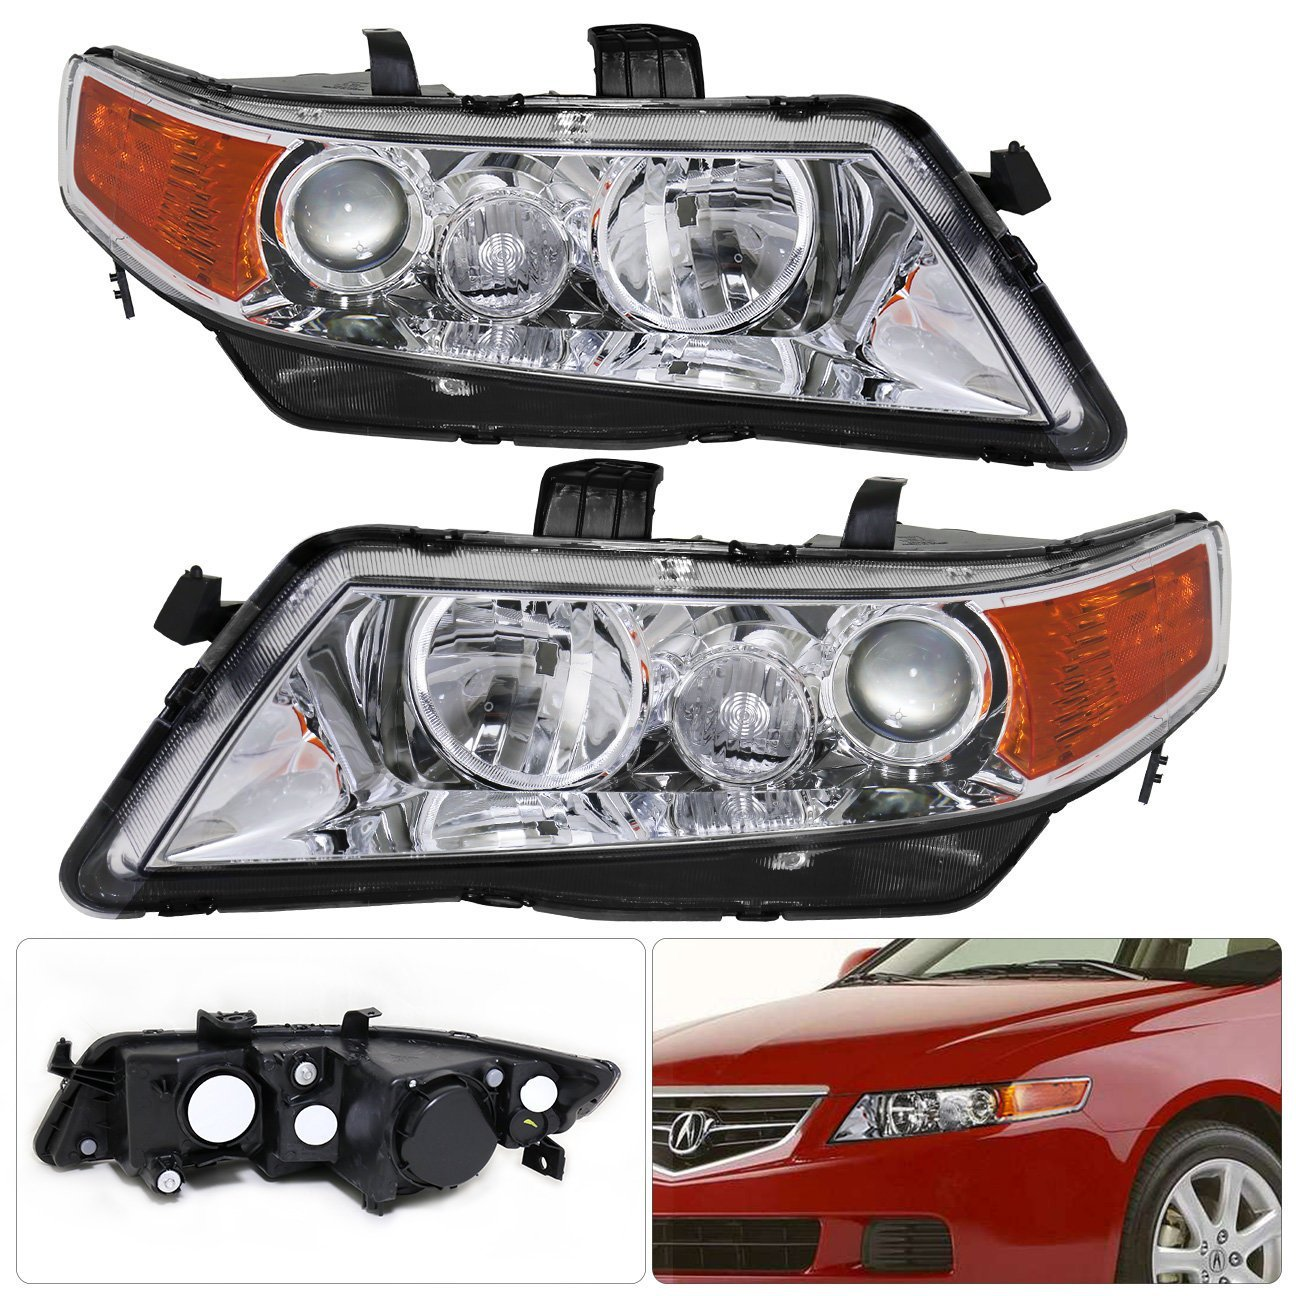 Get Quotations · For Acura TSX CL9 Projector Chrome Housing Clear Lens  Amber Reflectors Headlight Head Light Lamp Upgrade